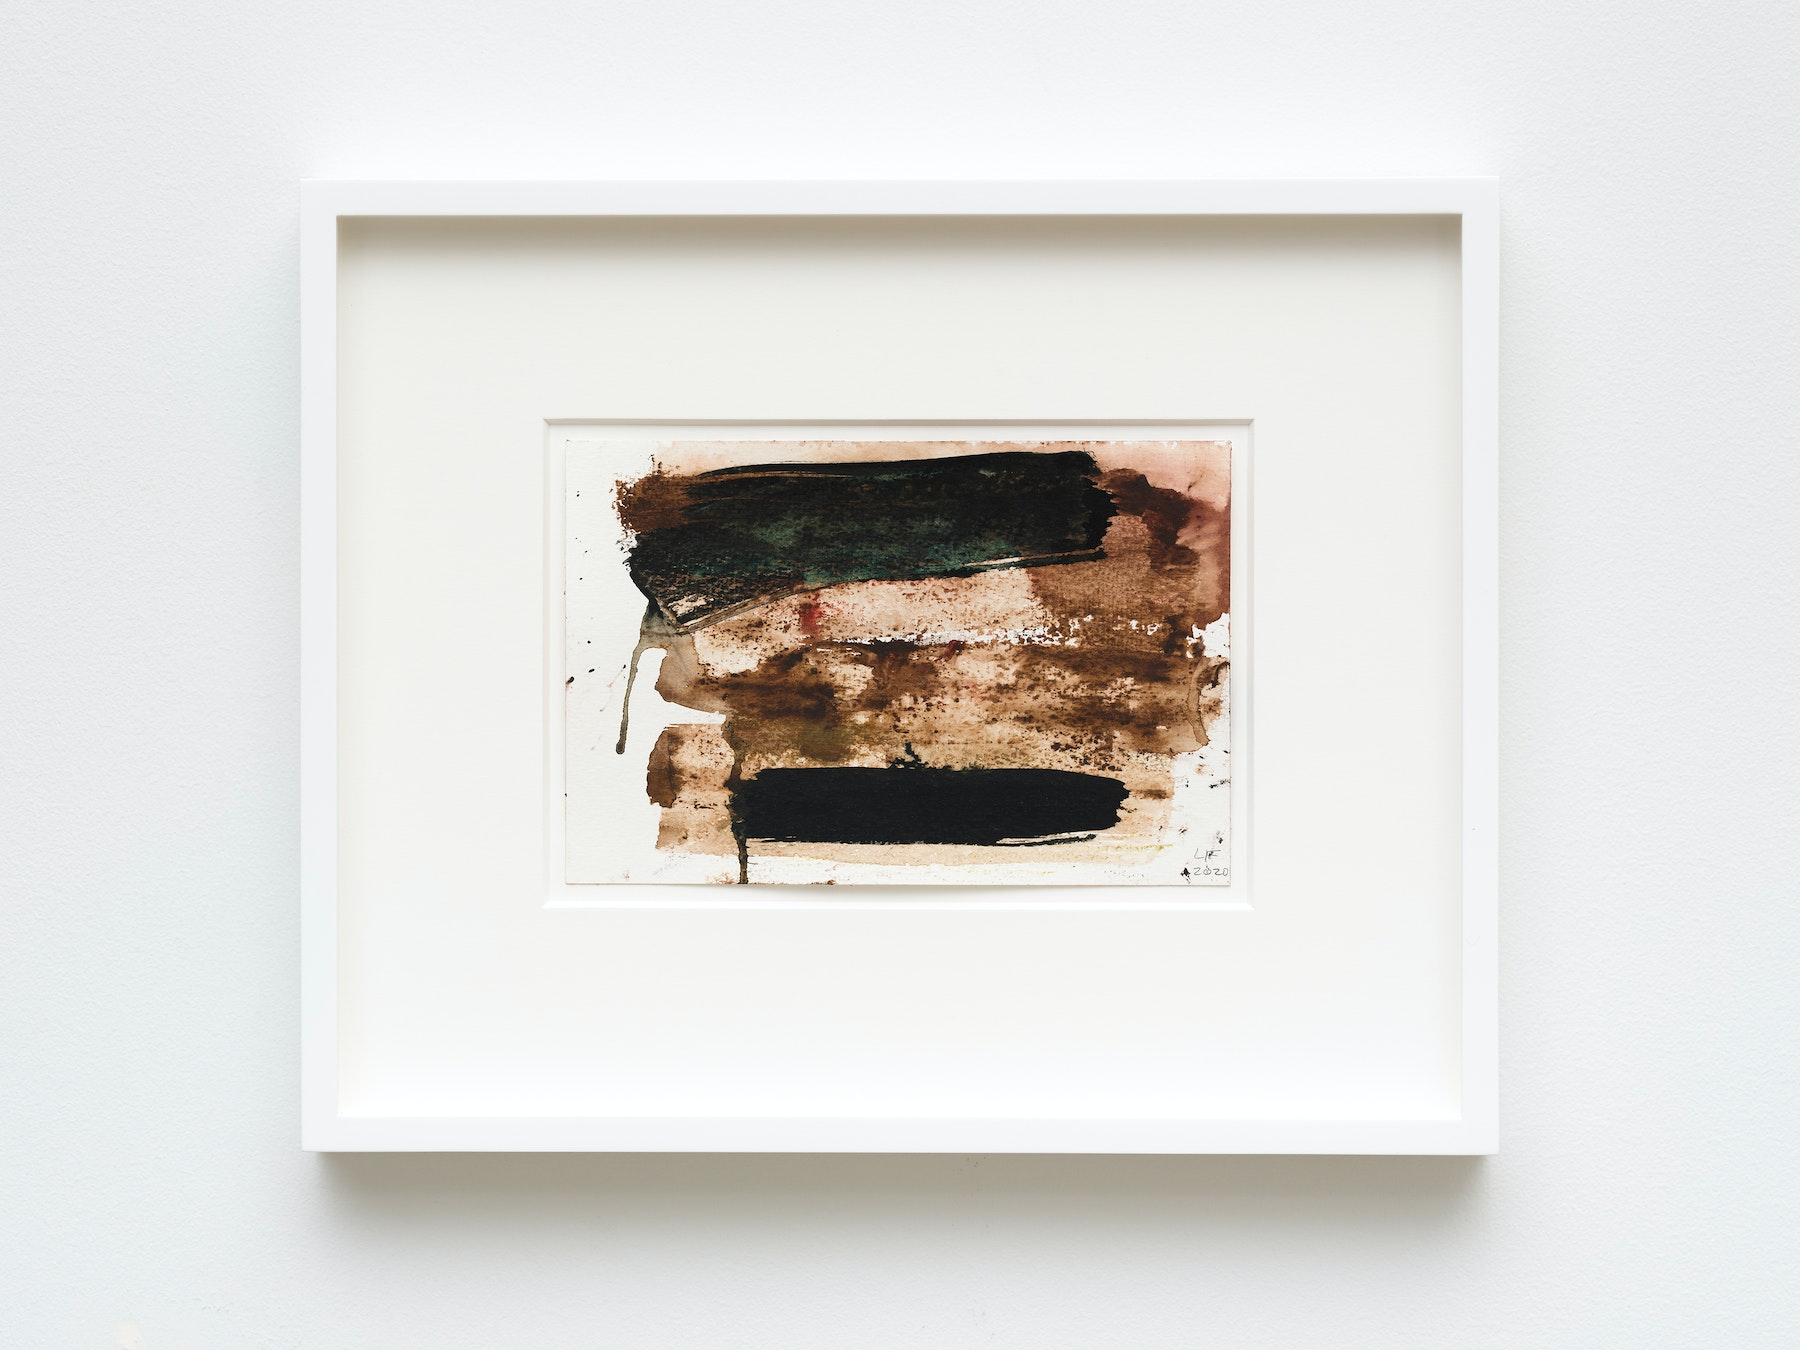 """Louise Fishman """"UNTITLED,"""" 2020 Watercolor on paper 6"""" x 9"""" [HxW] (15.24 x 22.86 cm) unframed, 13"""" x 16"""" x 1 ¹⁄₂"""" [HxWxD] (33.02 x 40.64 x 3.81 cm) framed Inventory #FIS163 Courtesy of the artist and Vielmetter Los Angeles Photo credit: Jeff Mclane"""